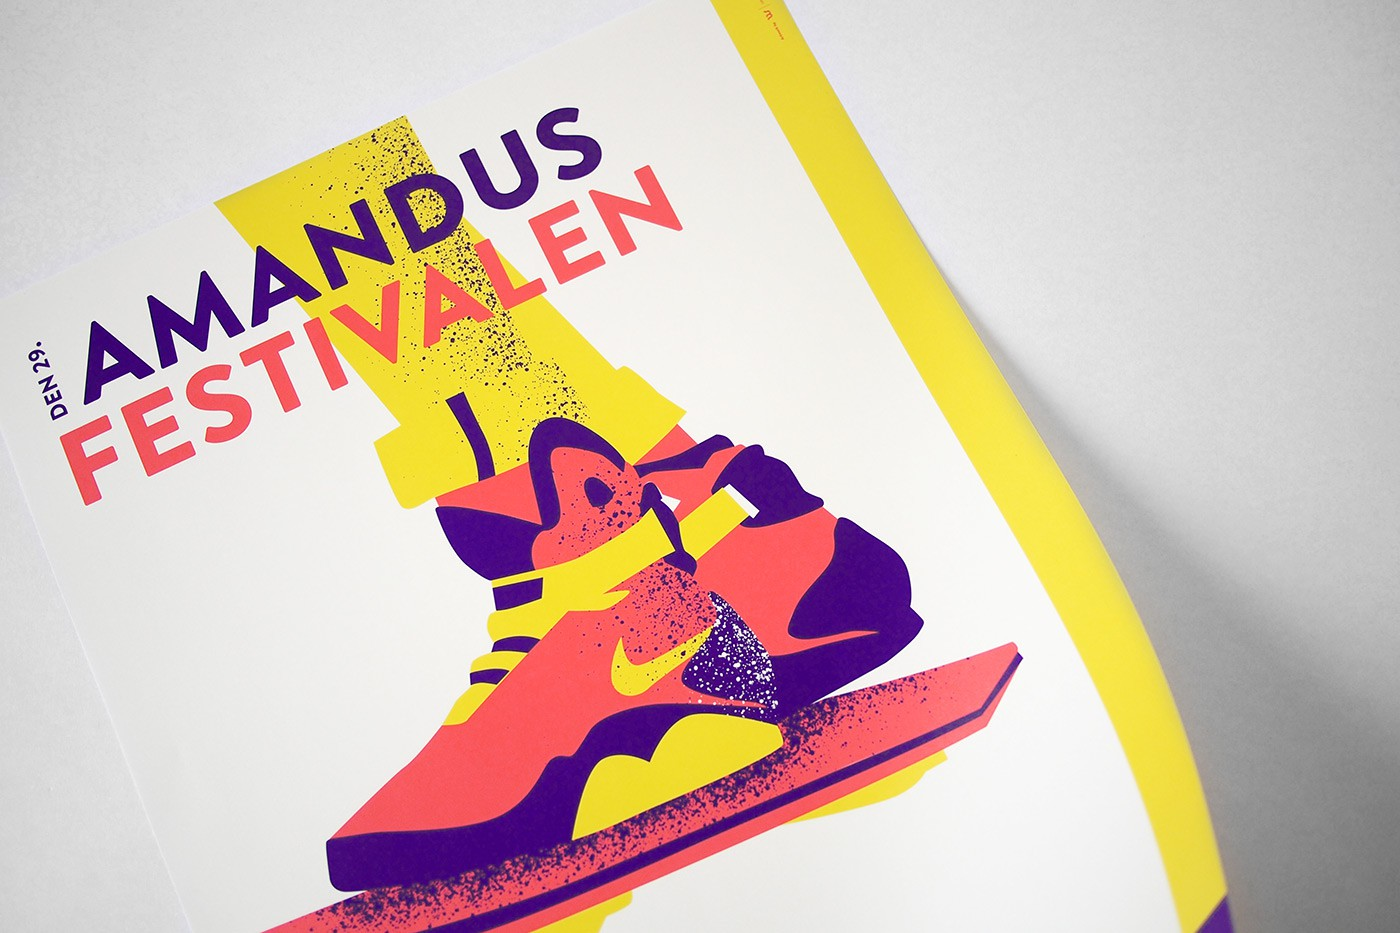 amandus 2016 poster design by upstruct